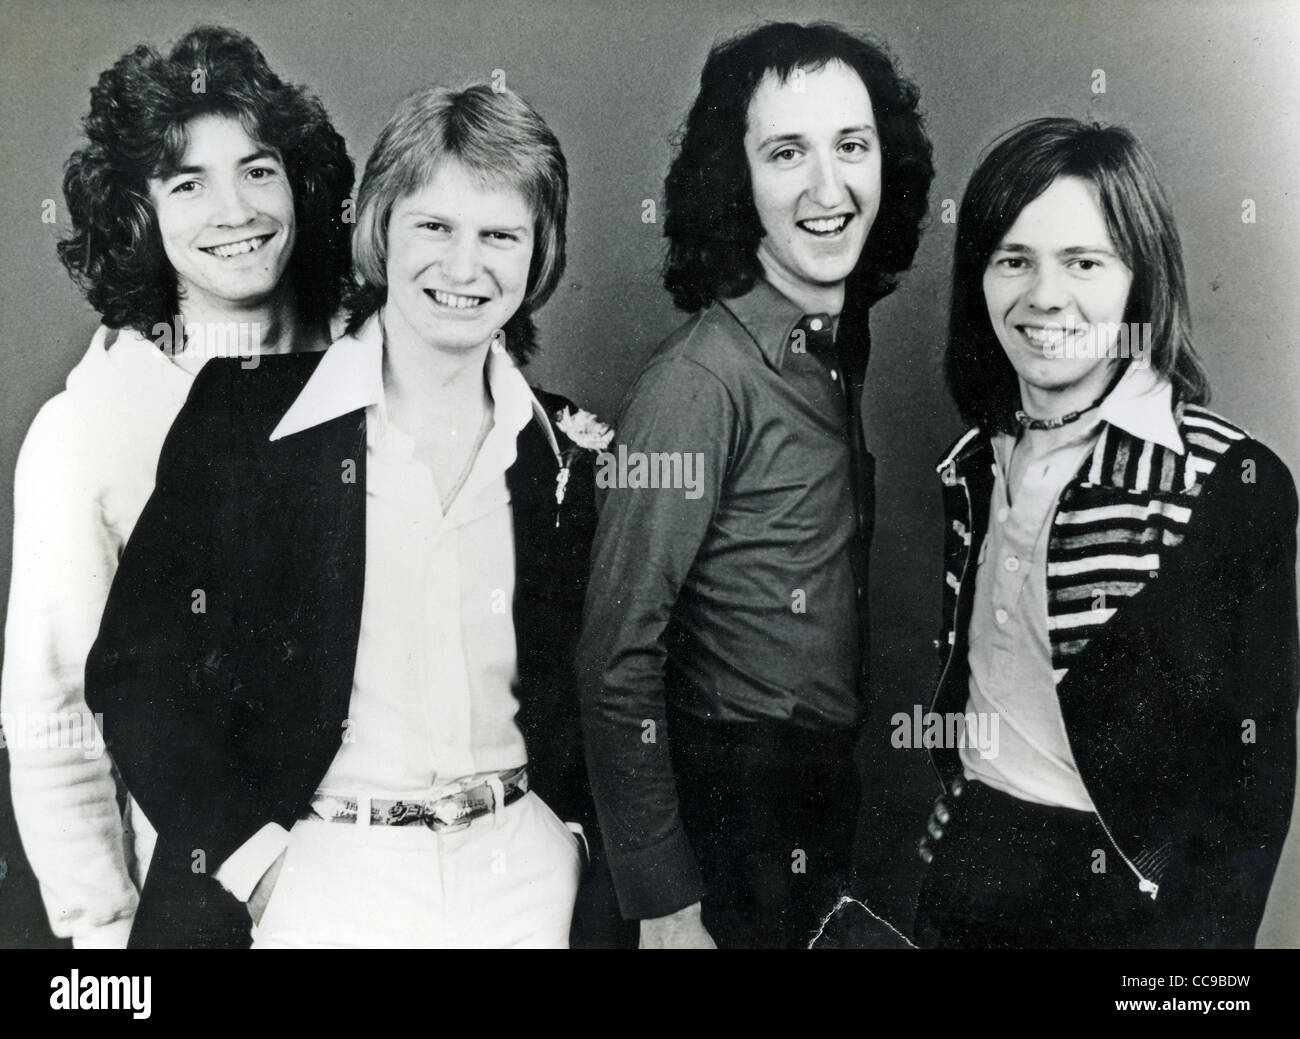 PILOT  Promotional photo of UK pop group about  1974 from left: Stuart Tosh, Billy Lyall, Ian Bairnson, David Patton Stock Photo